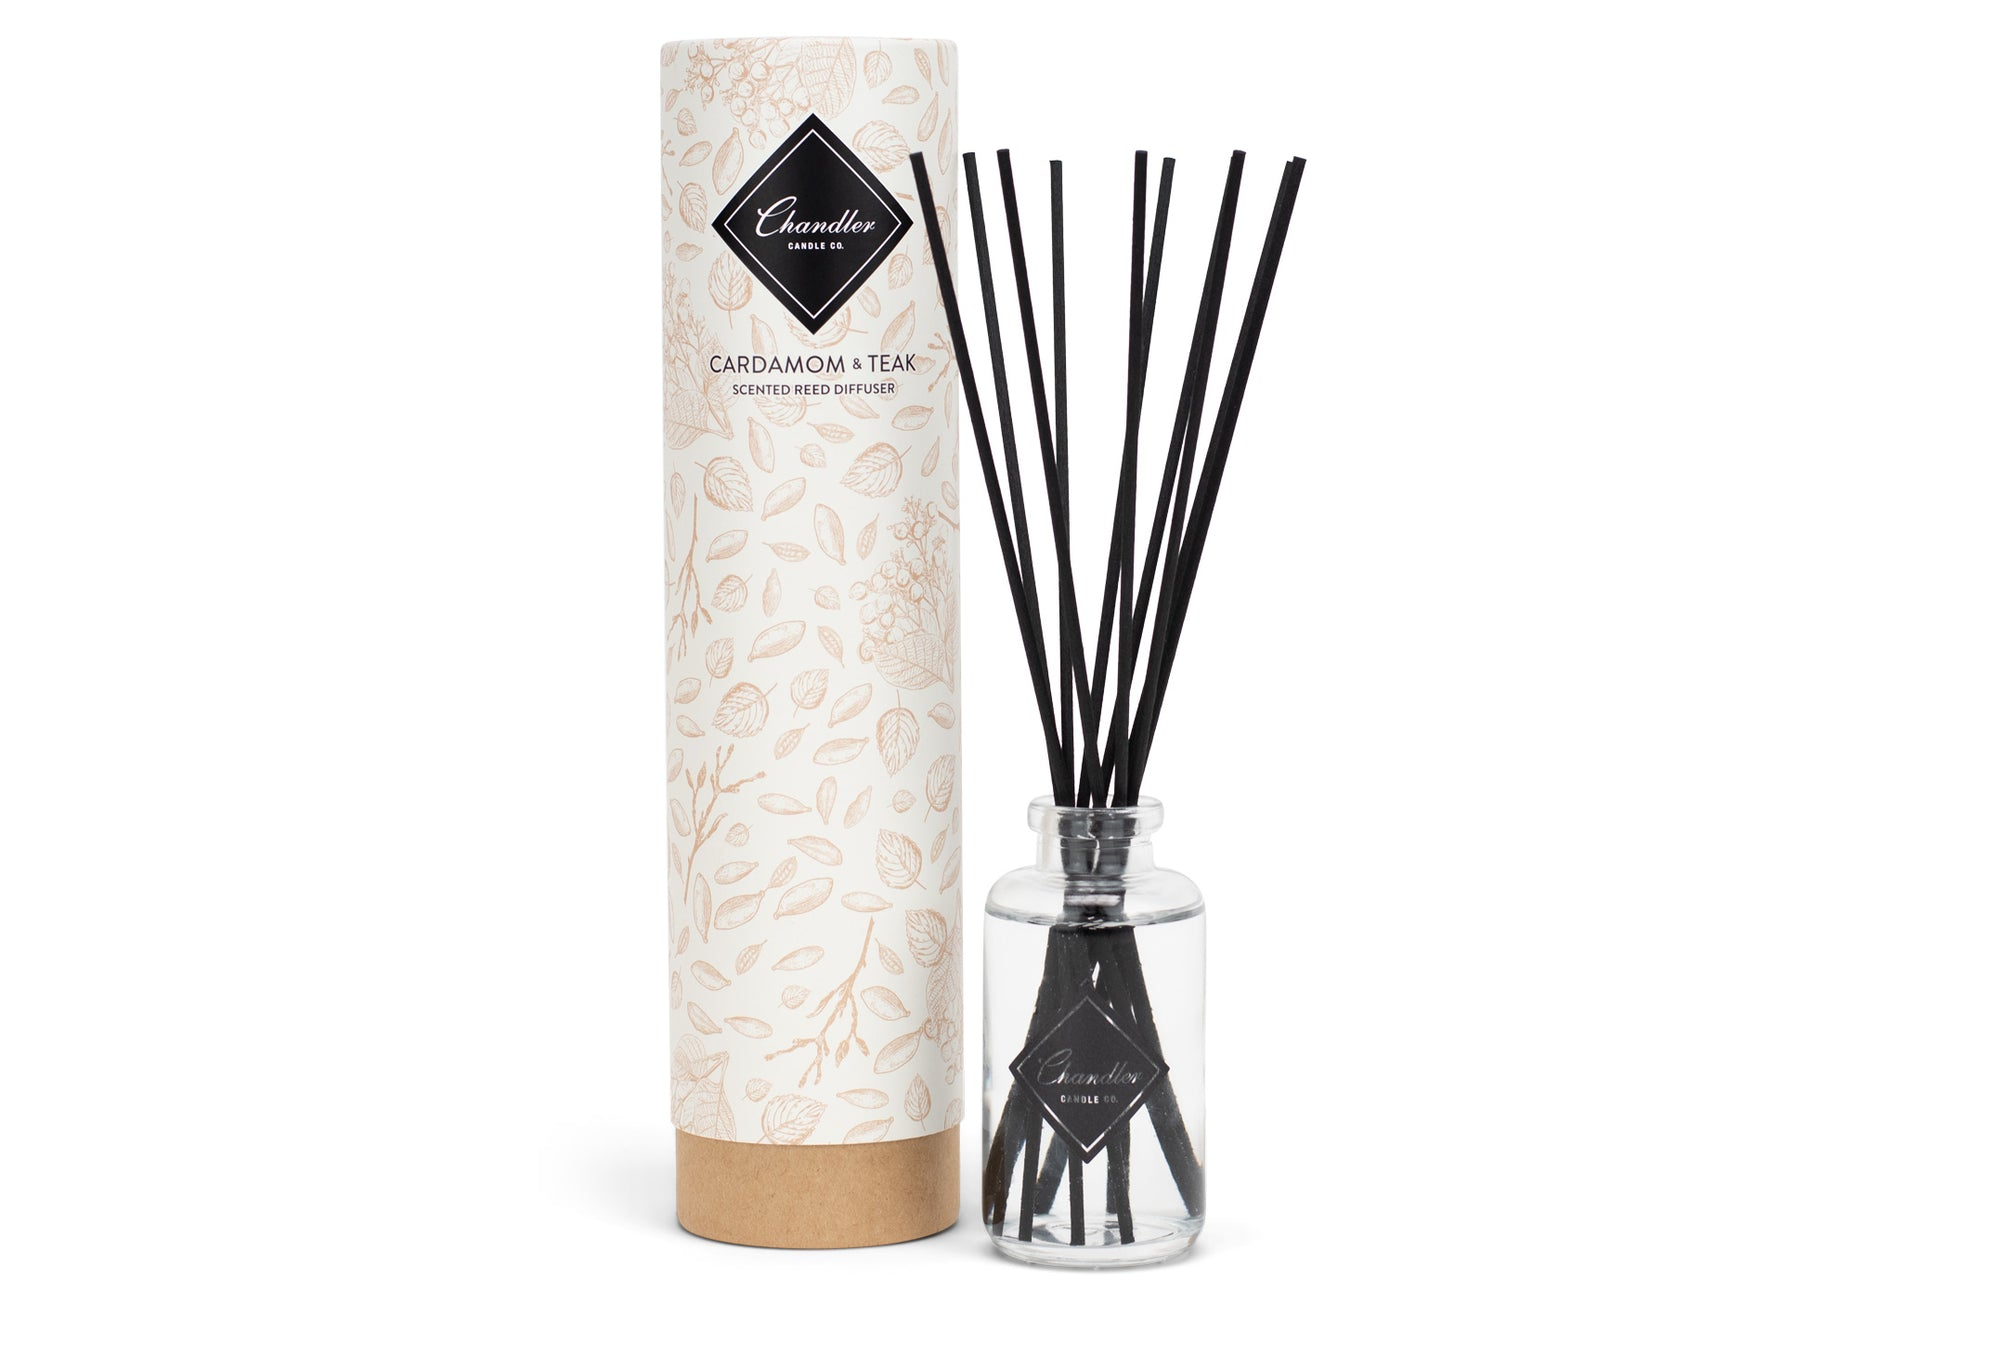 Cardamom and Teak Scented Reed Diffuser